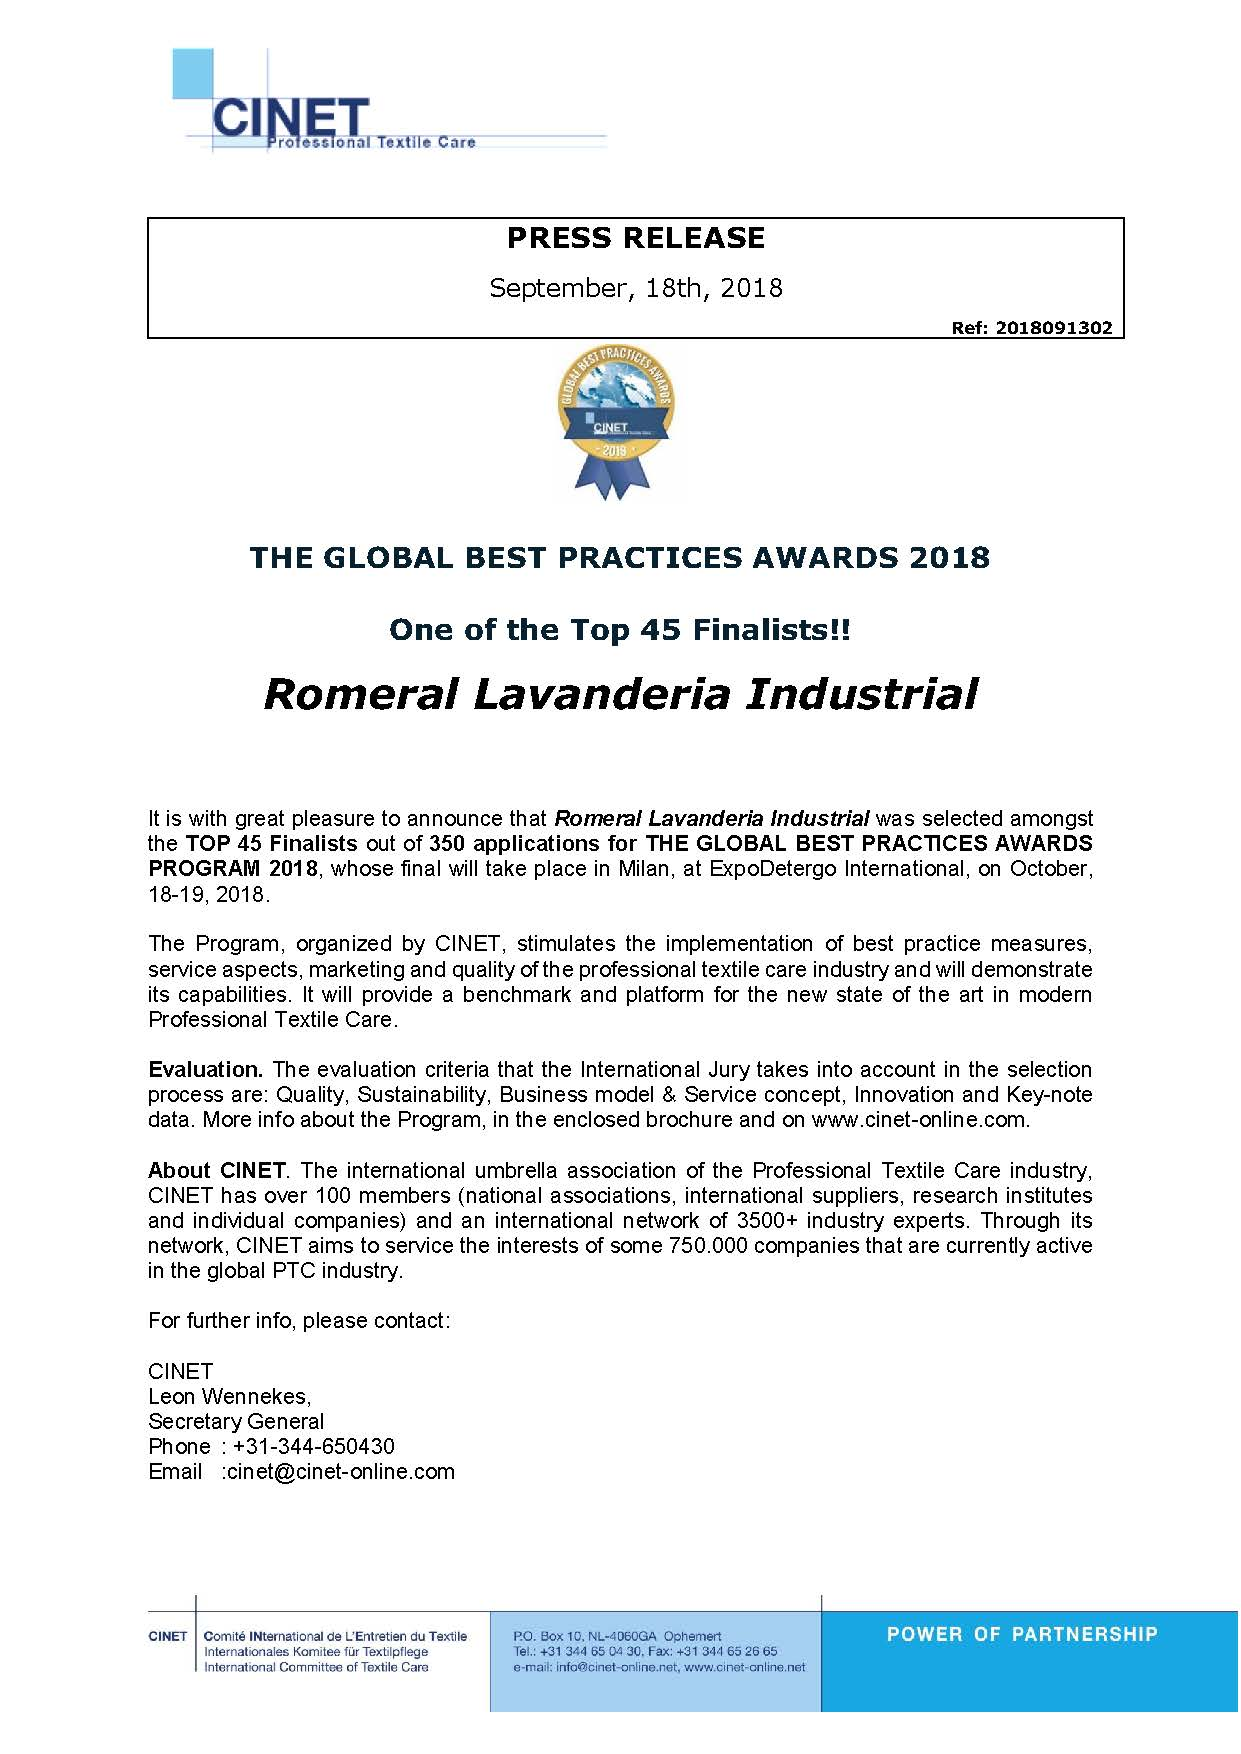 2018091302 PRESS RELEASE GBPA18 FINALIST ROMERAL